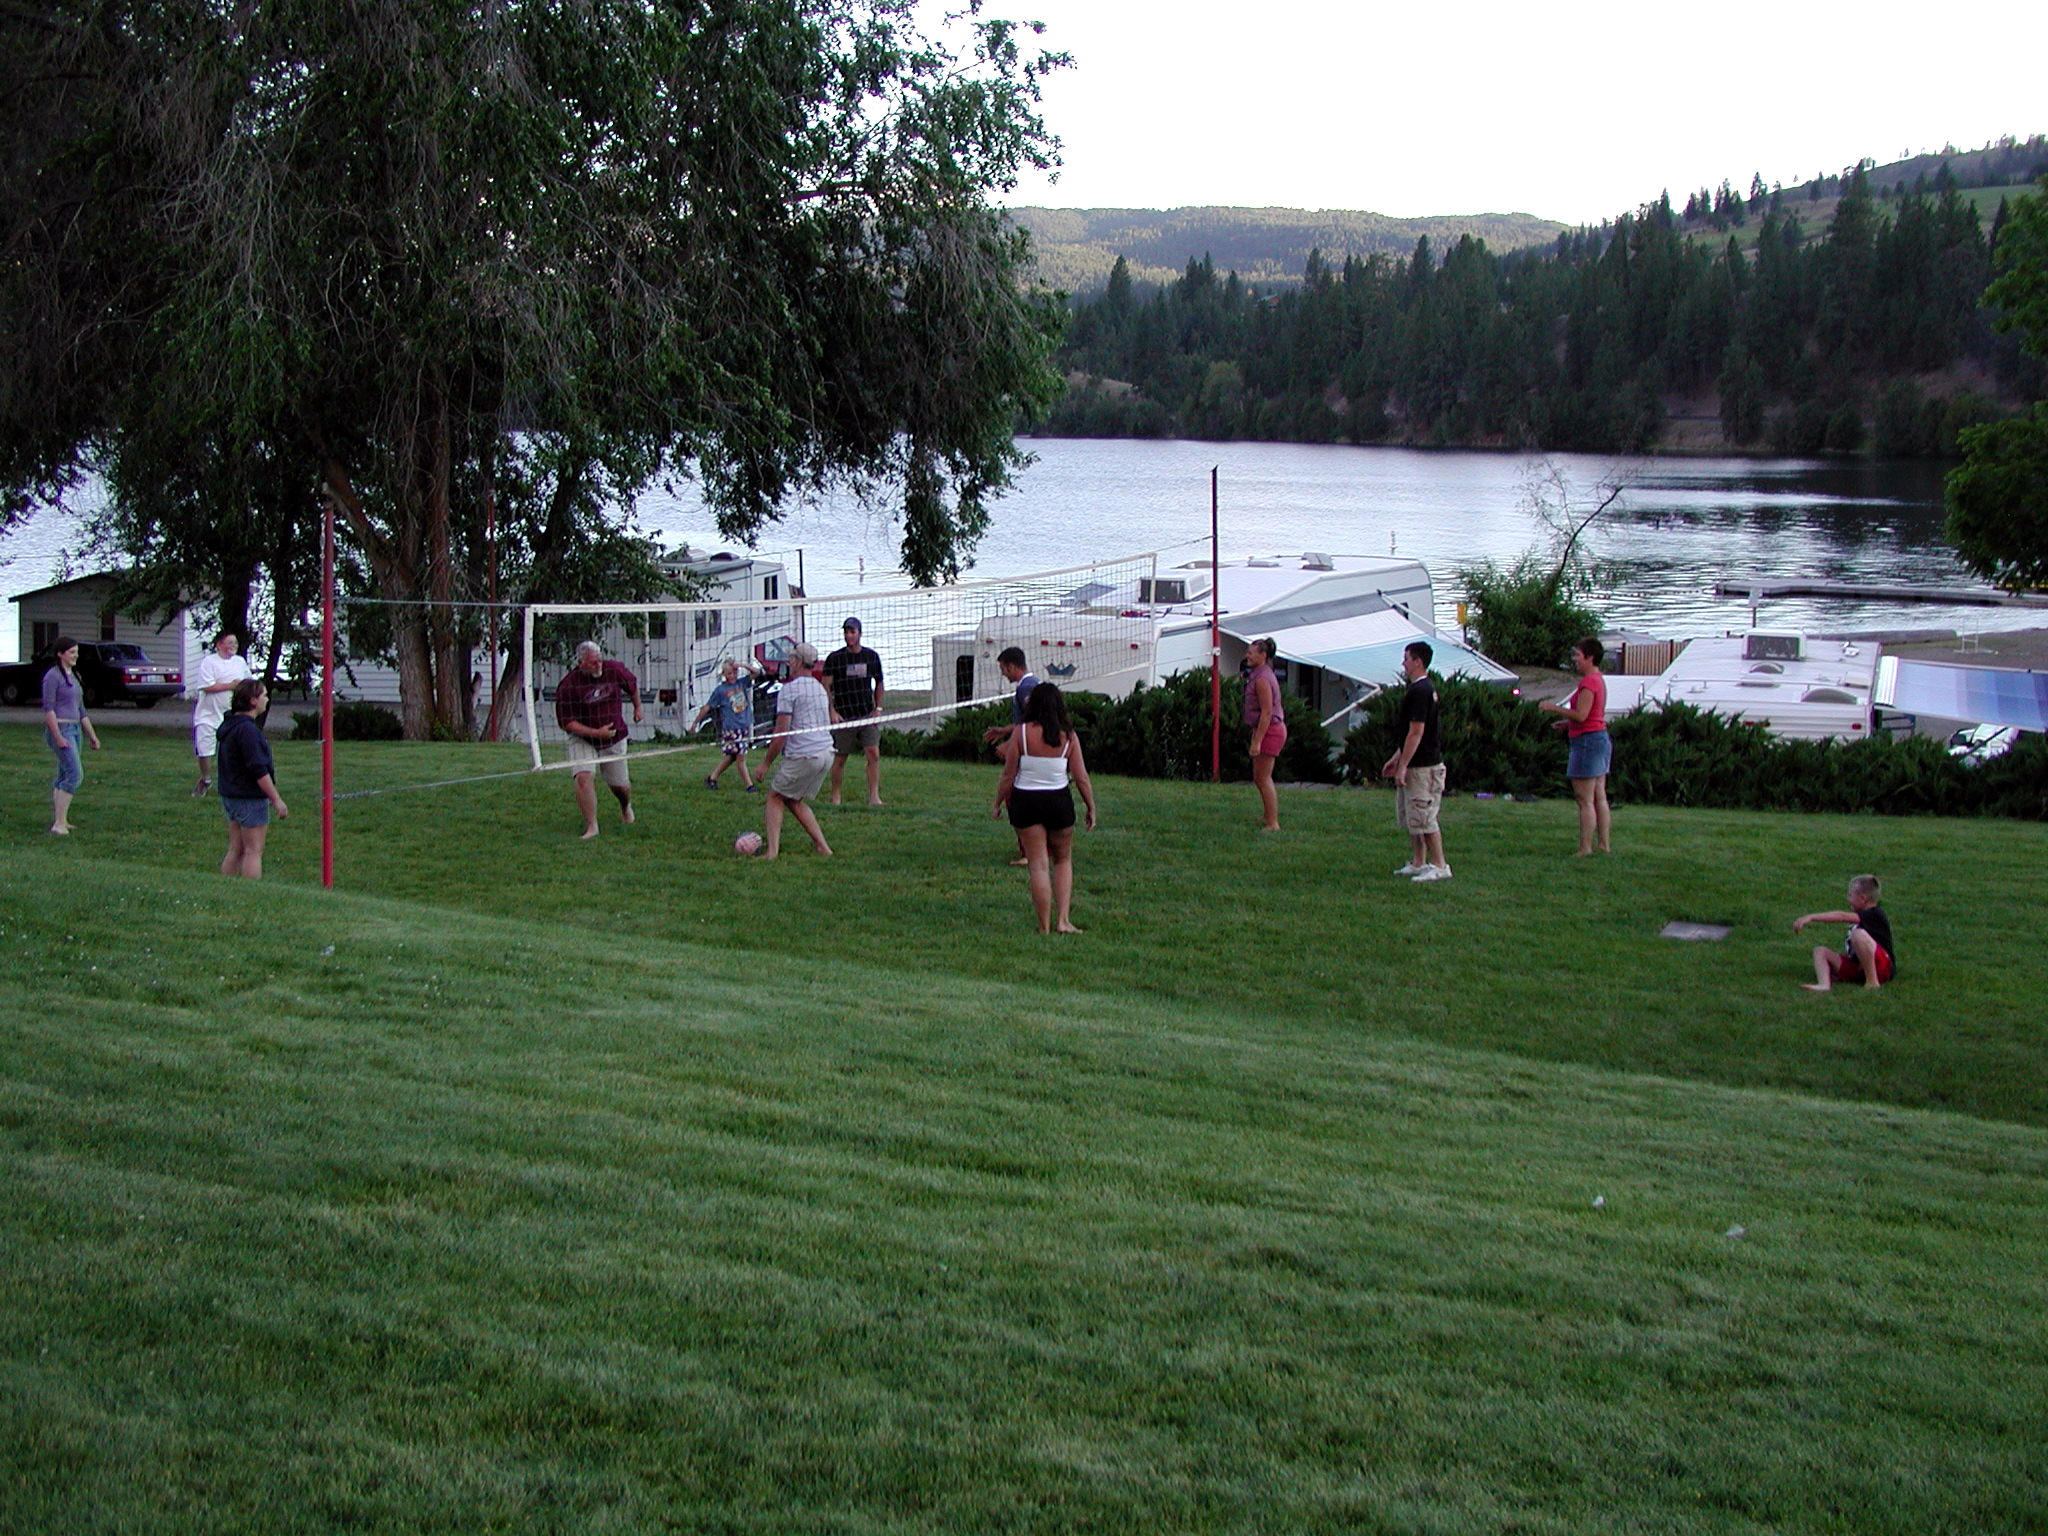 Volleyball at Tiffanys Resort Curlew Lake